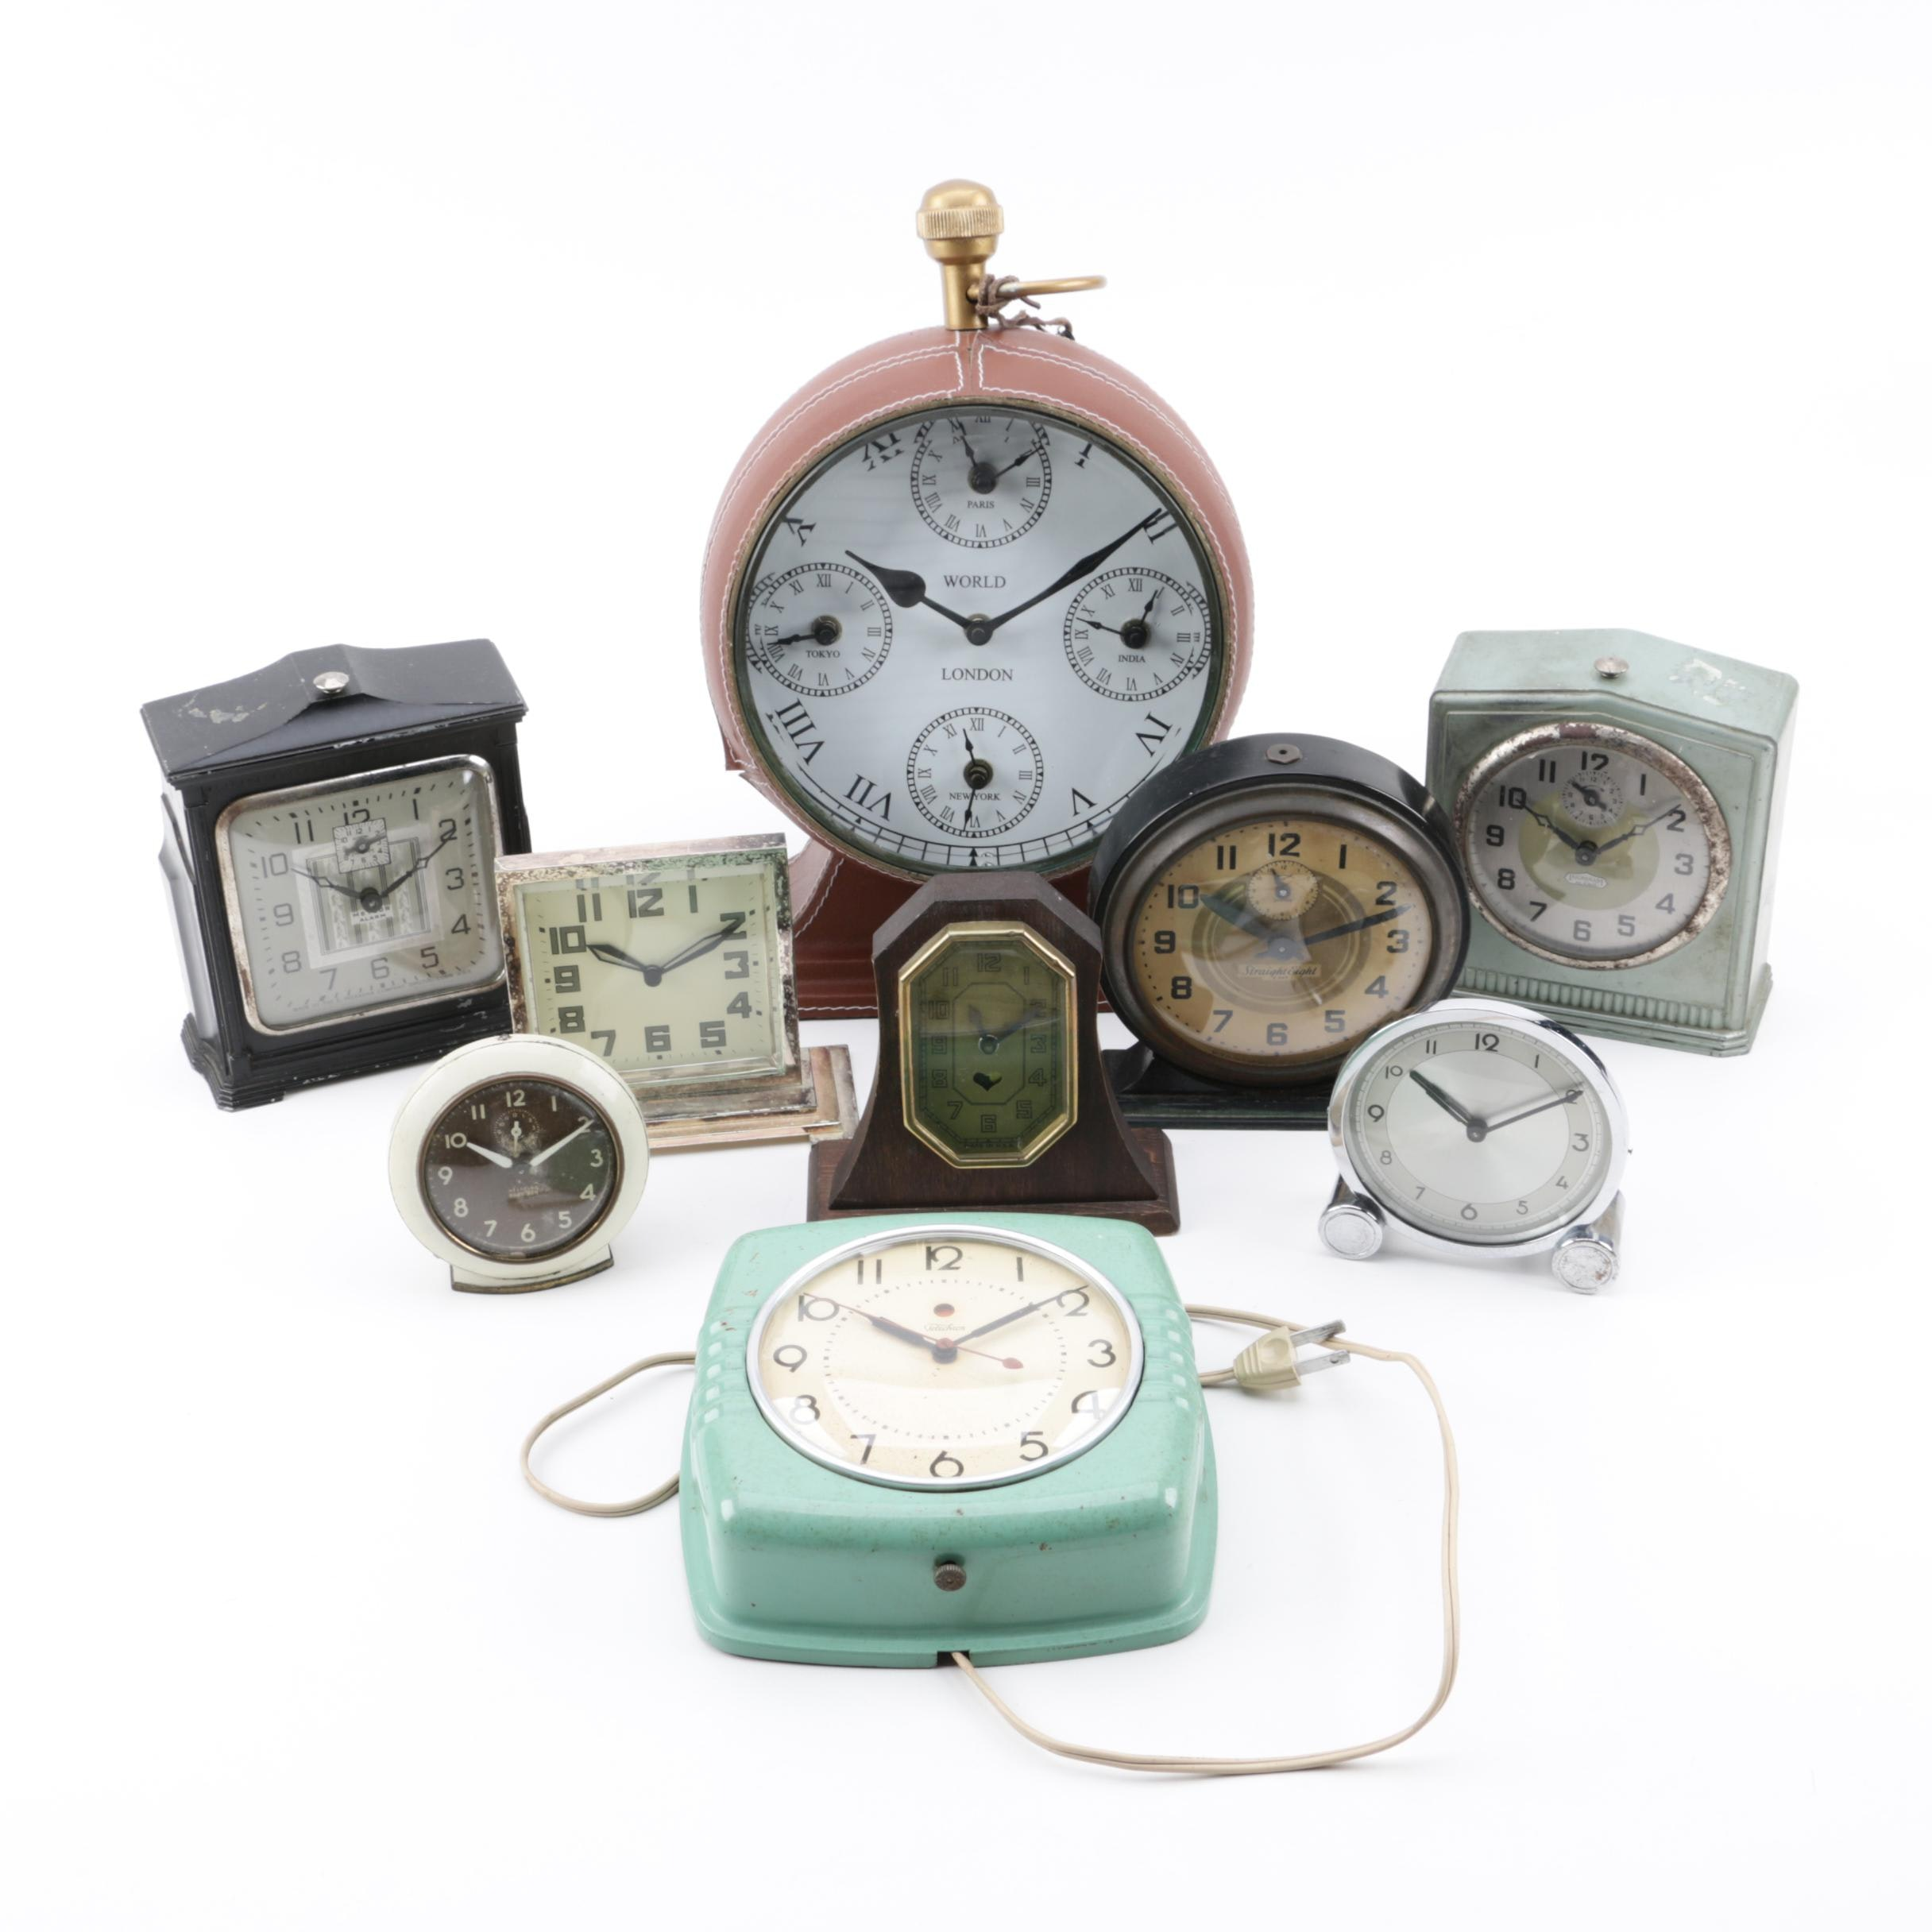 Desk and Wall Clocks including Ingraham, Telechrom, and Pottery Barn